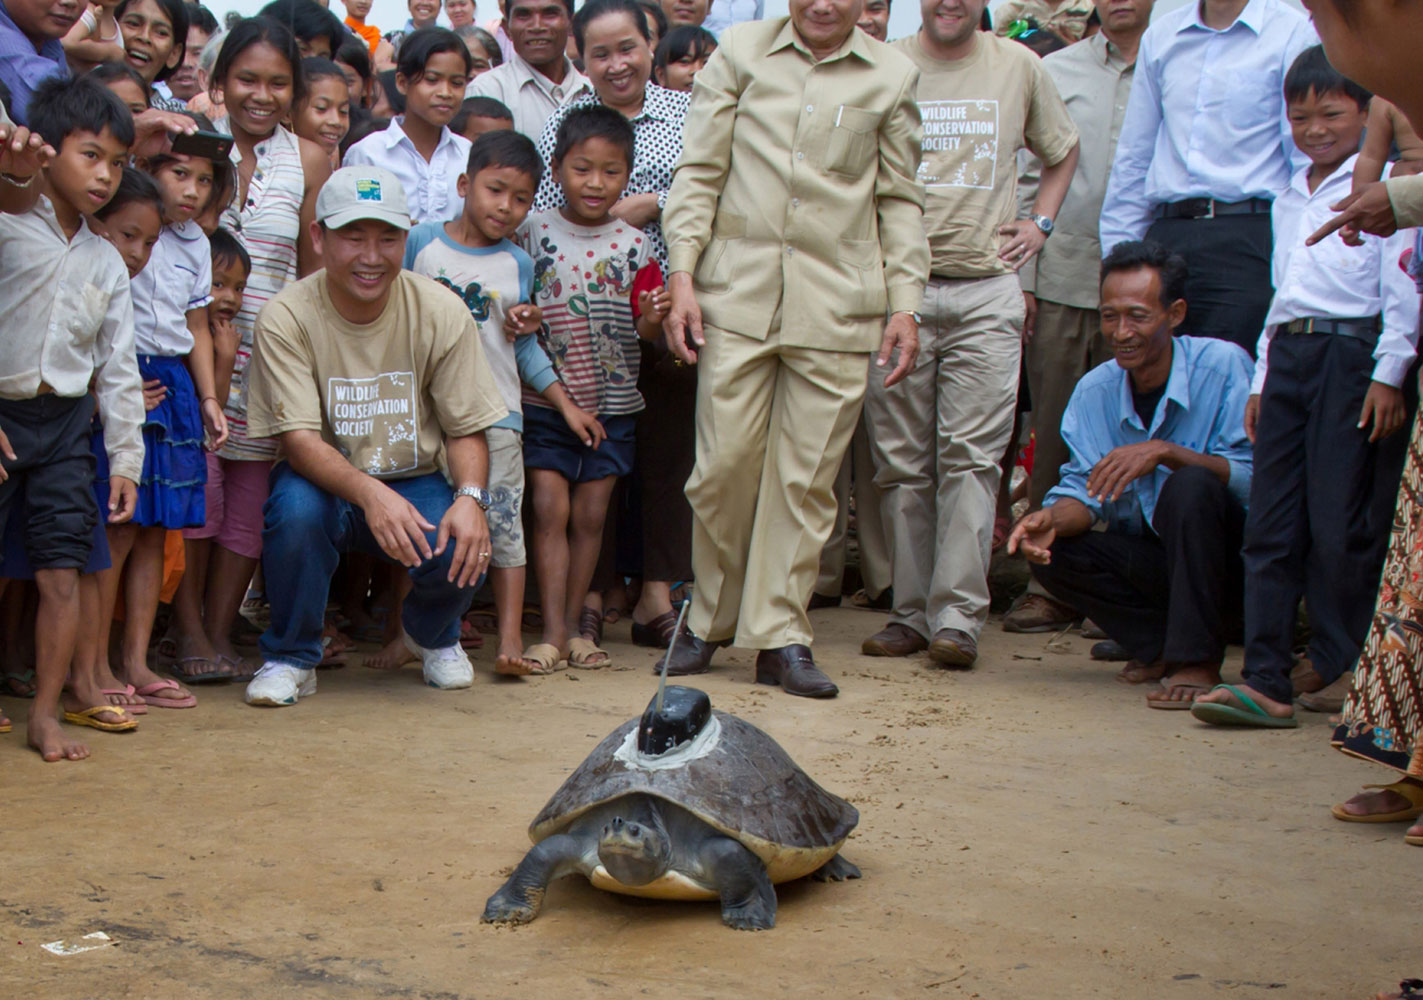 A 75-lb (34-kg) southern river terrapin waddles on sand as it is released near the Sre Ambel river in Cambodia. There are less than 200 of these turtles left in the wild. This one has a transmitter that will allow conservationists to track it.